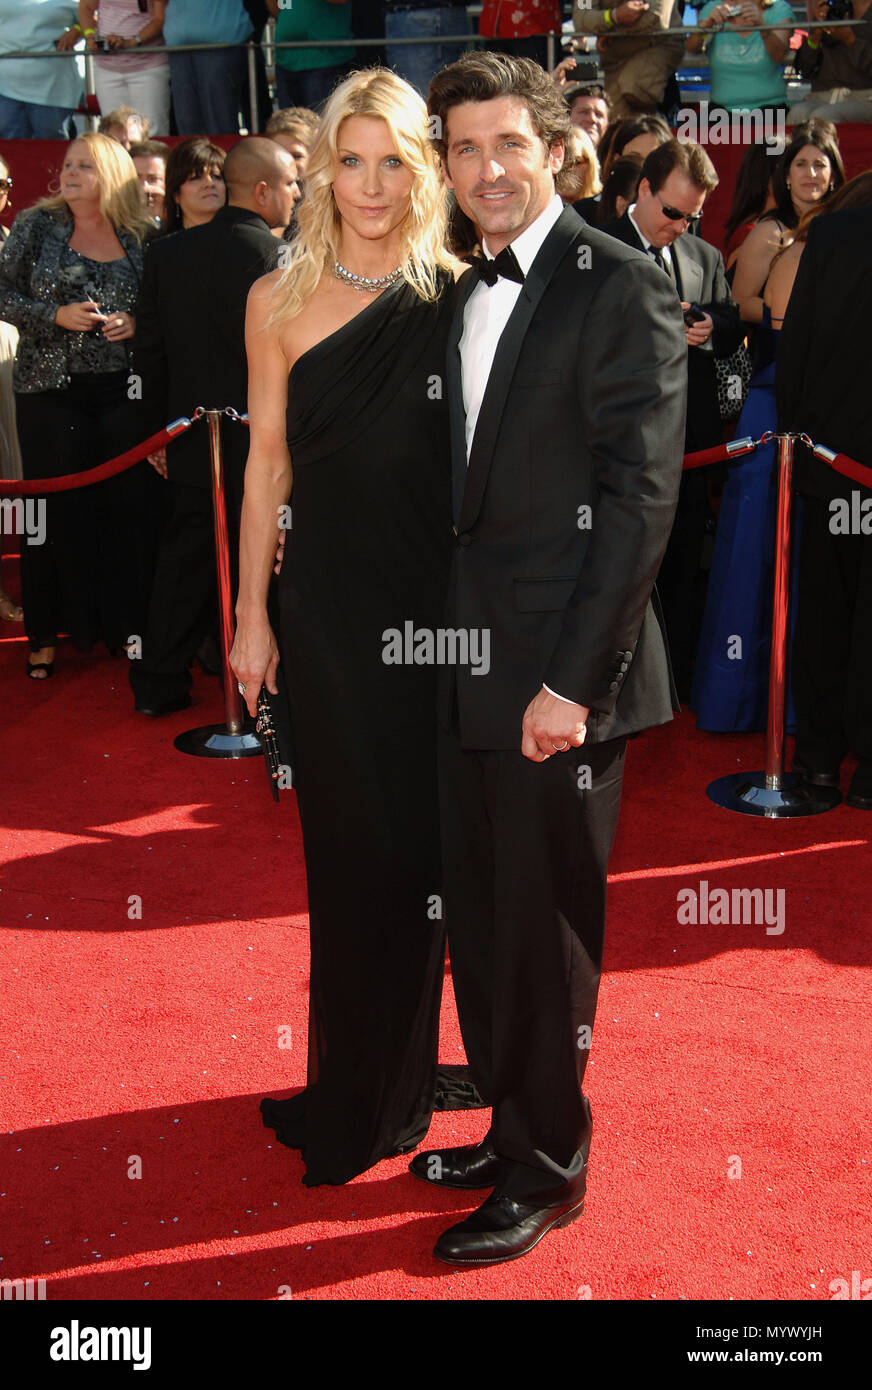 Patrick Dempsey And Wife 60th Annual Emmys Awards At The Nokia